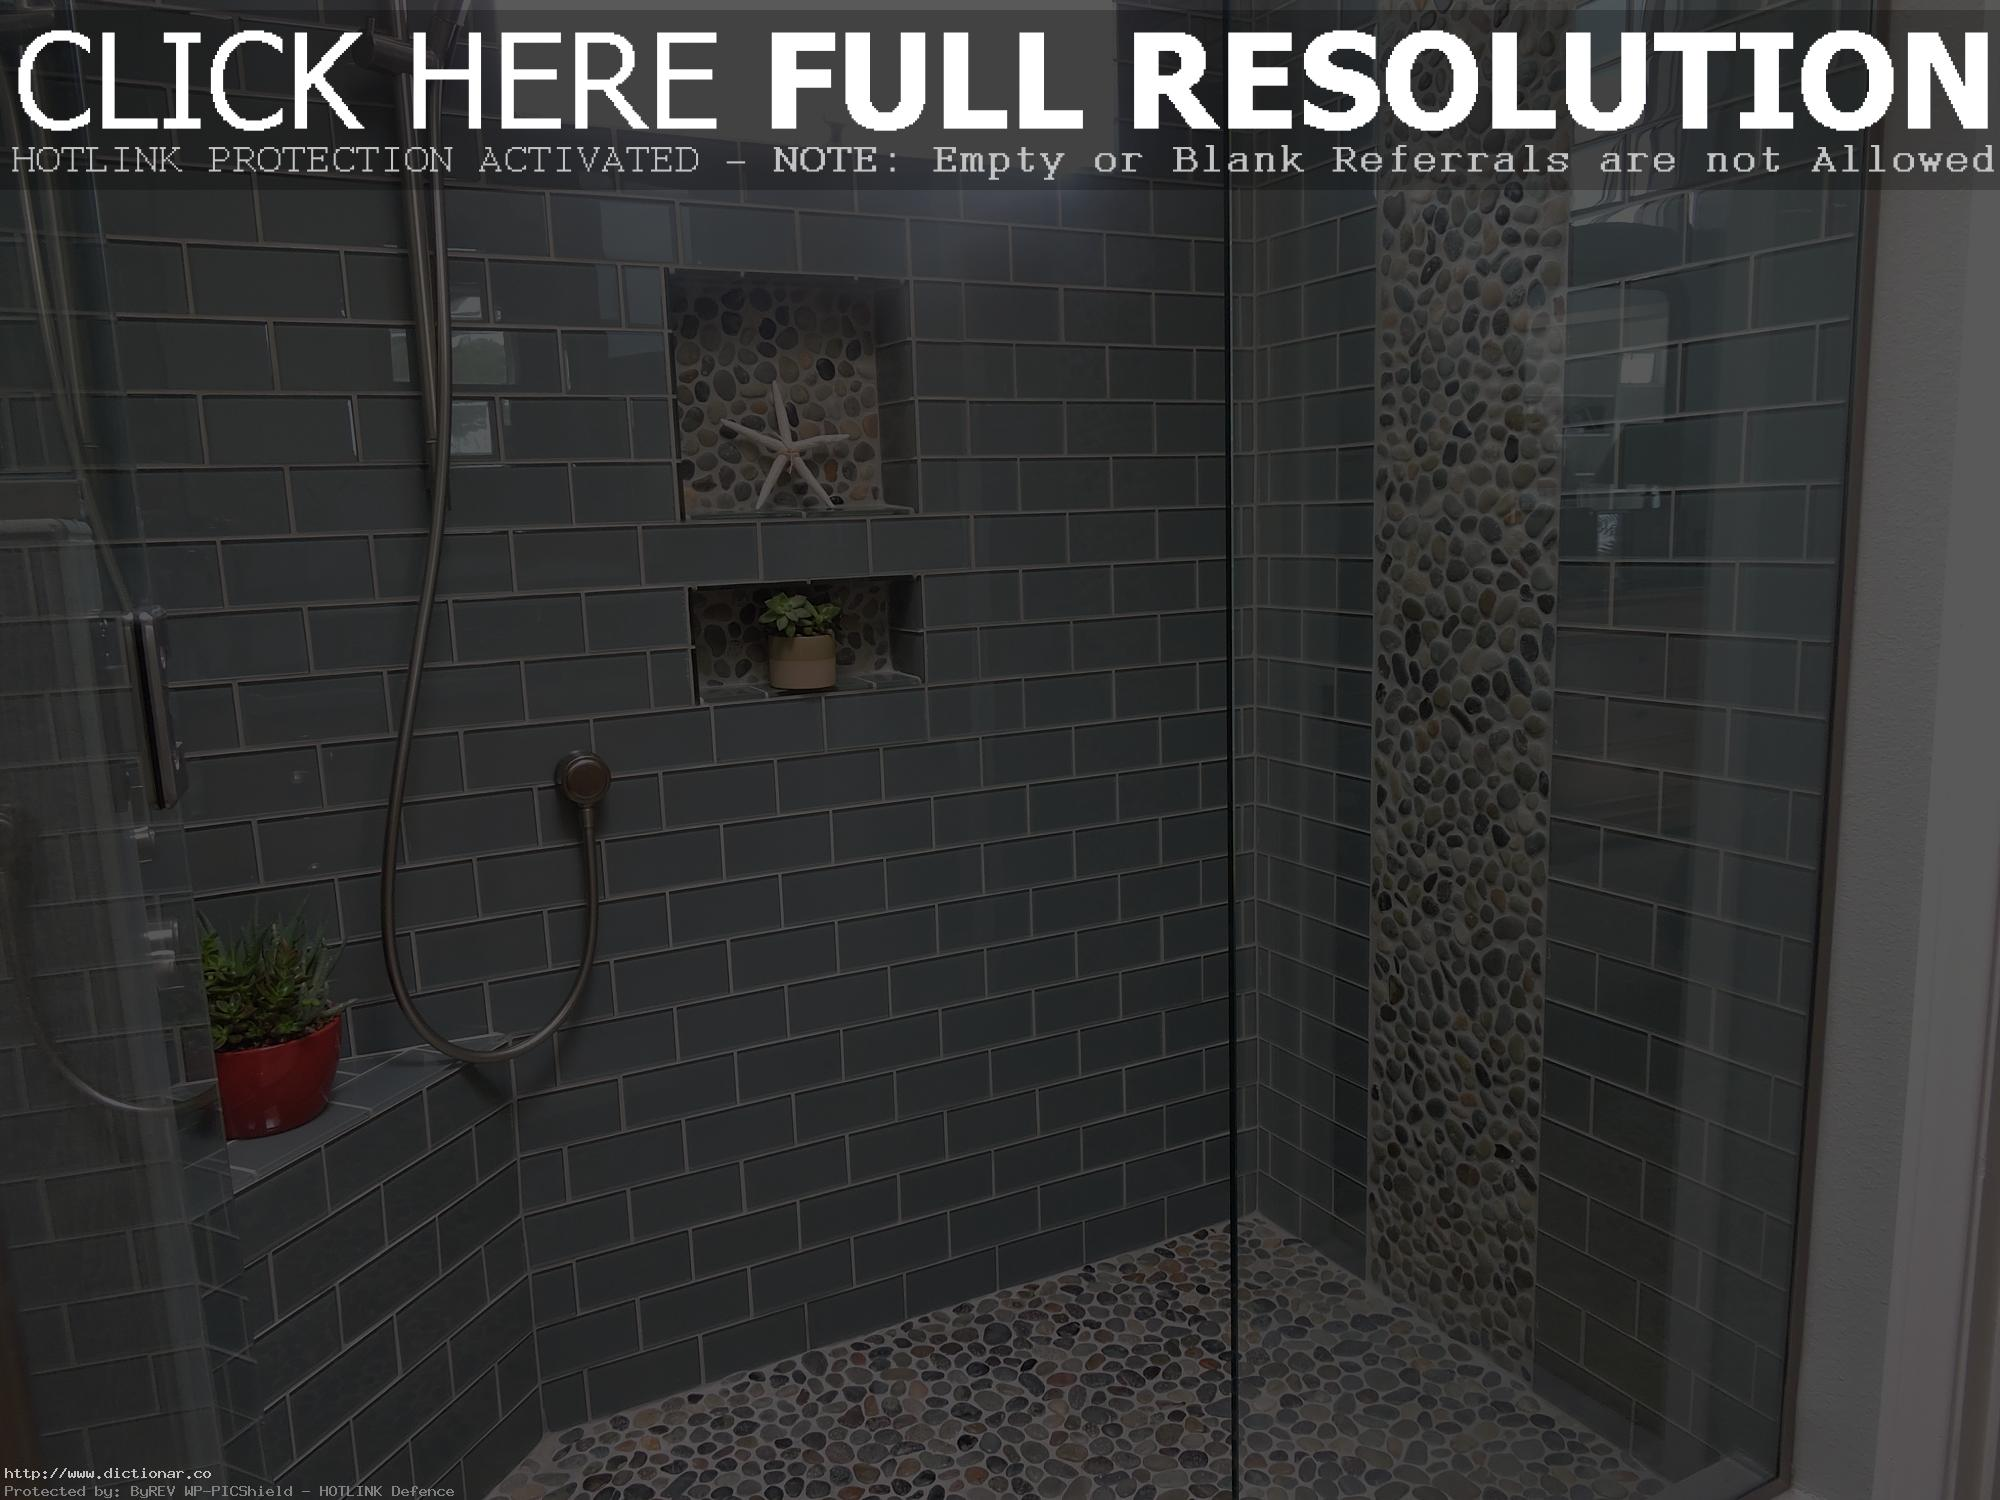 large-bali-ocean-pebble-tile-shower-floor-with-accents-with-best-decoration-and-bathroom-tile-outlet